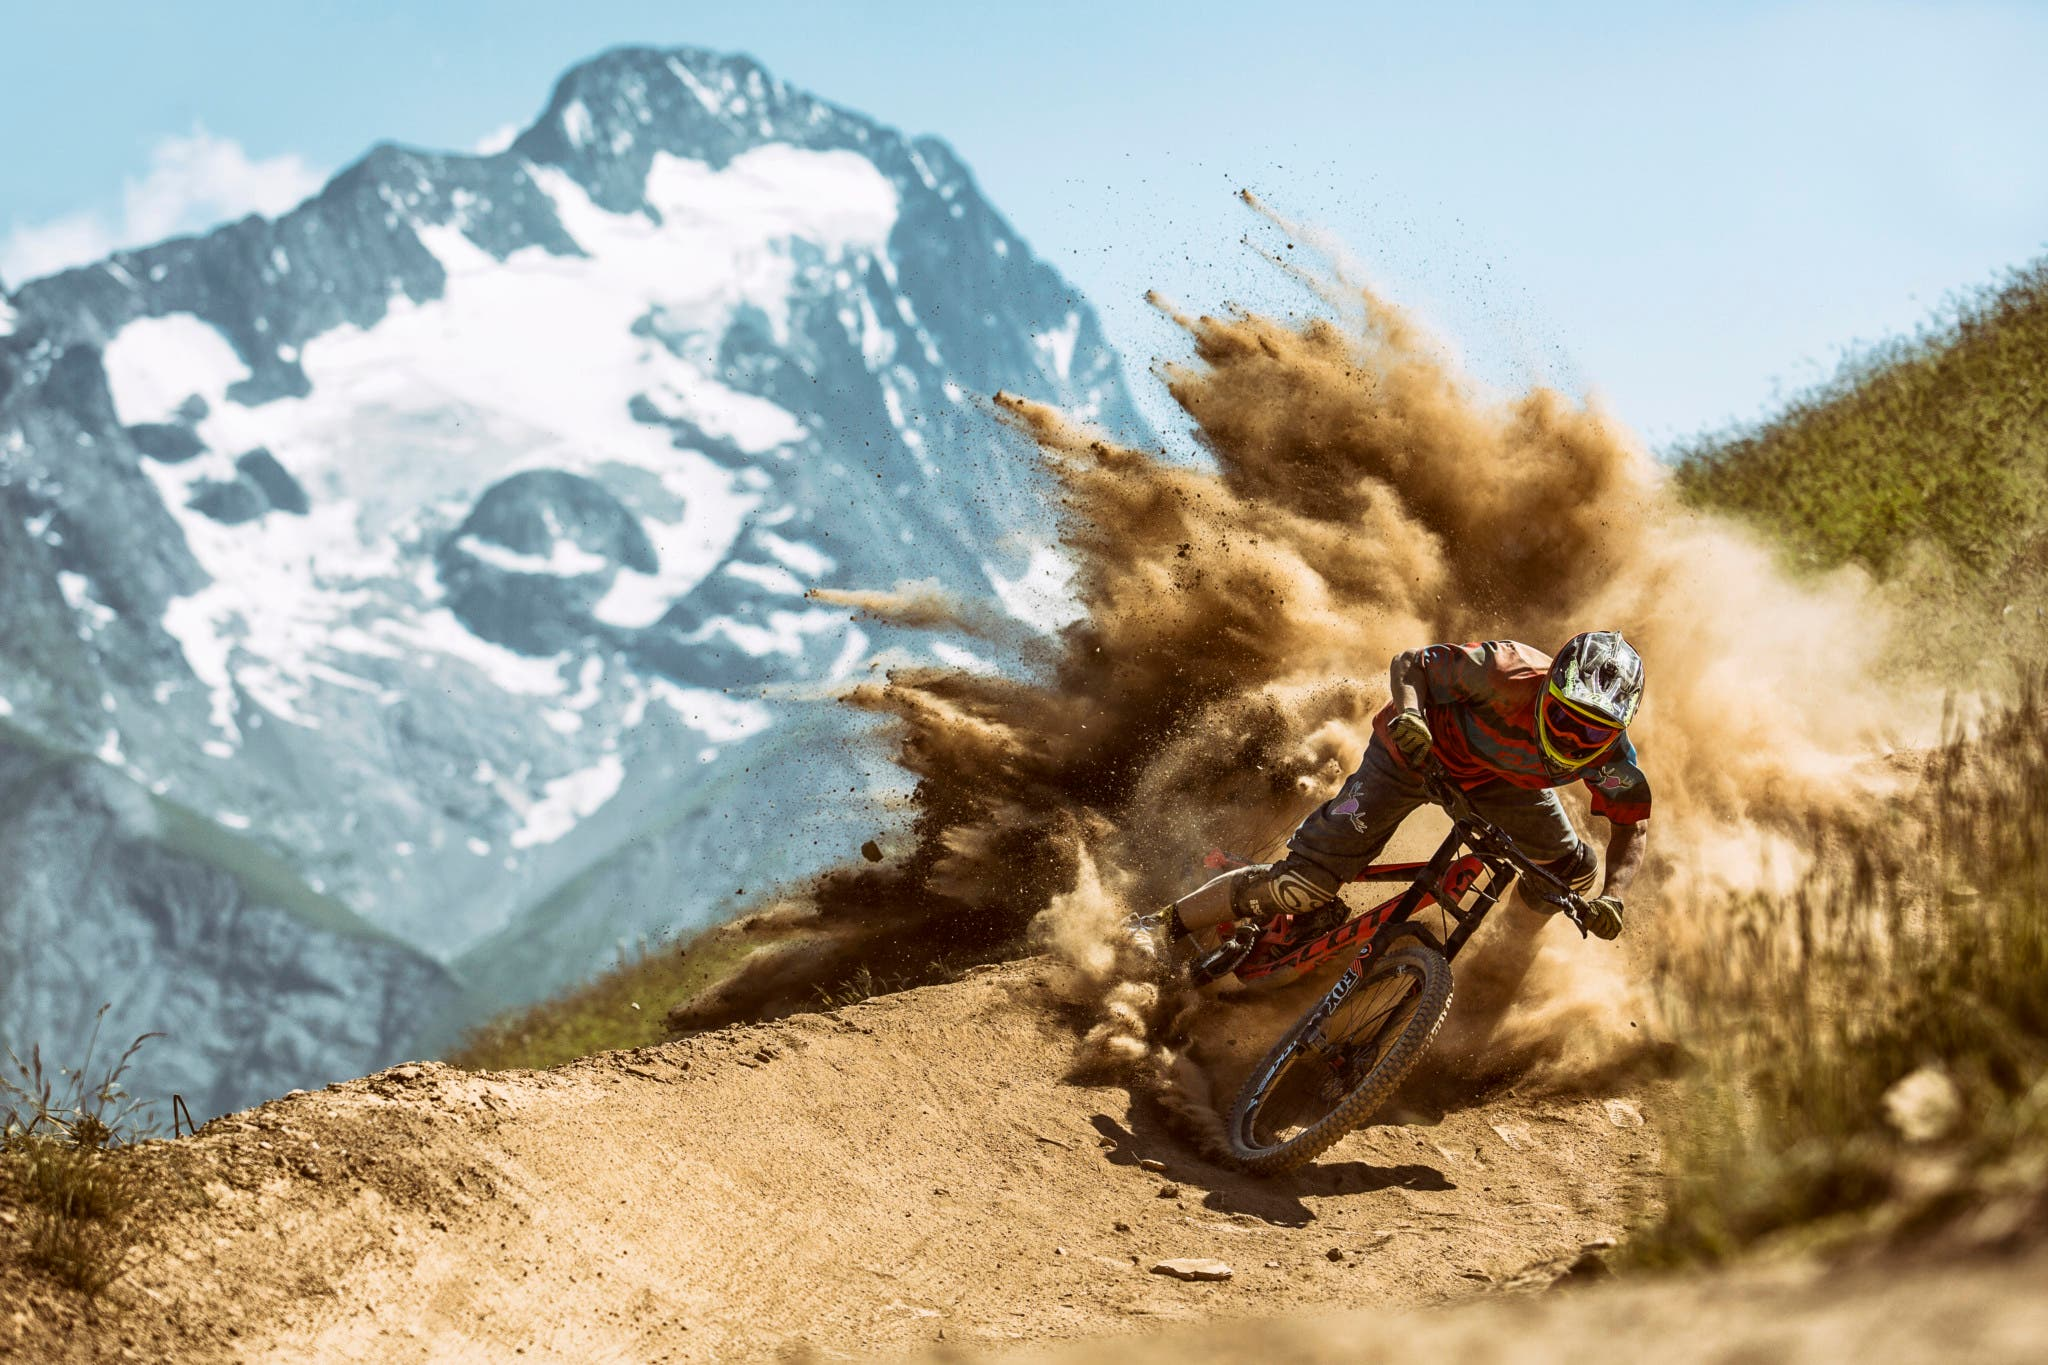 Red Bull Illume Sneak Peek Offers Glimpse of the World's Best Action Sport Photography